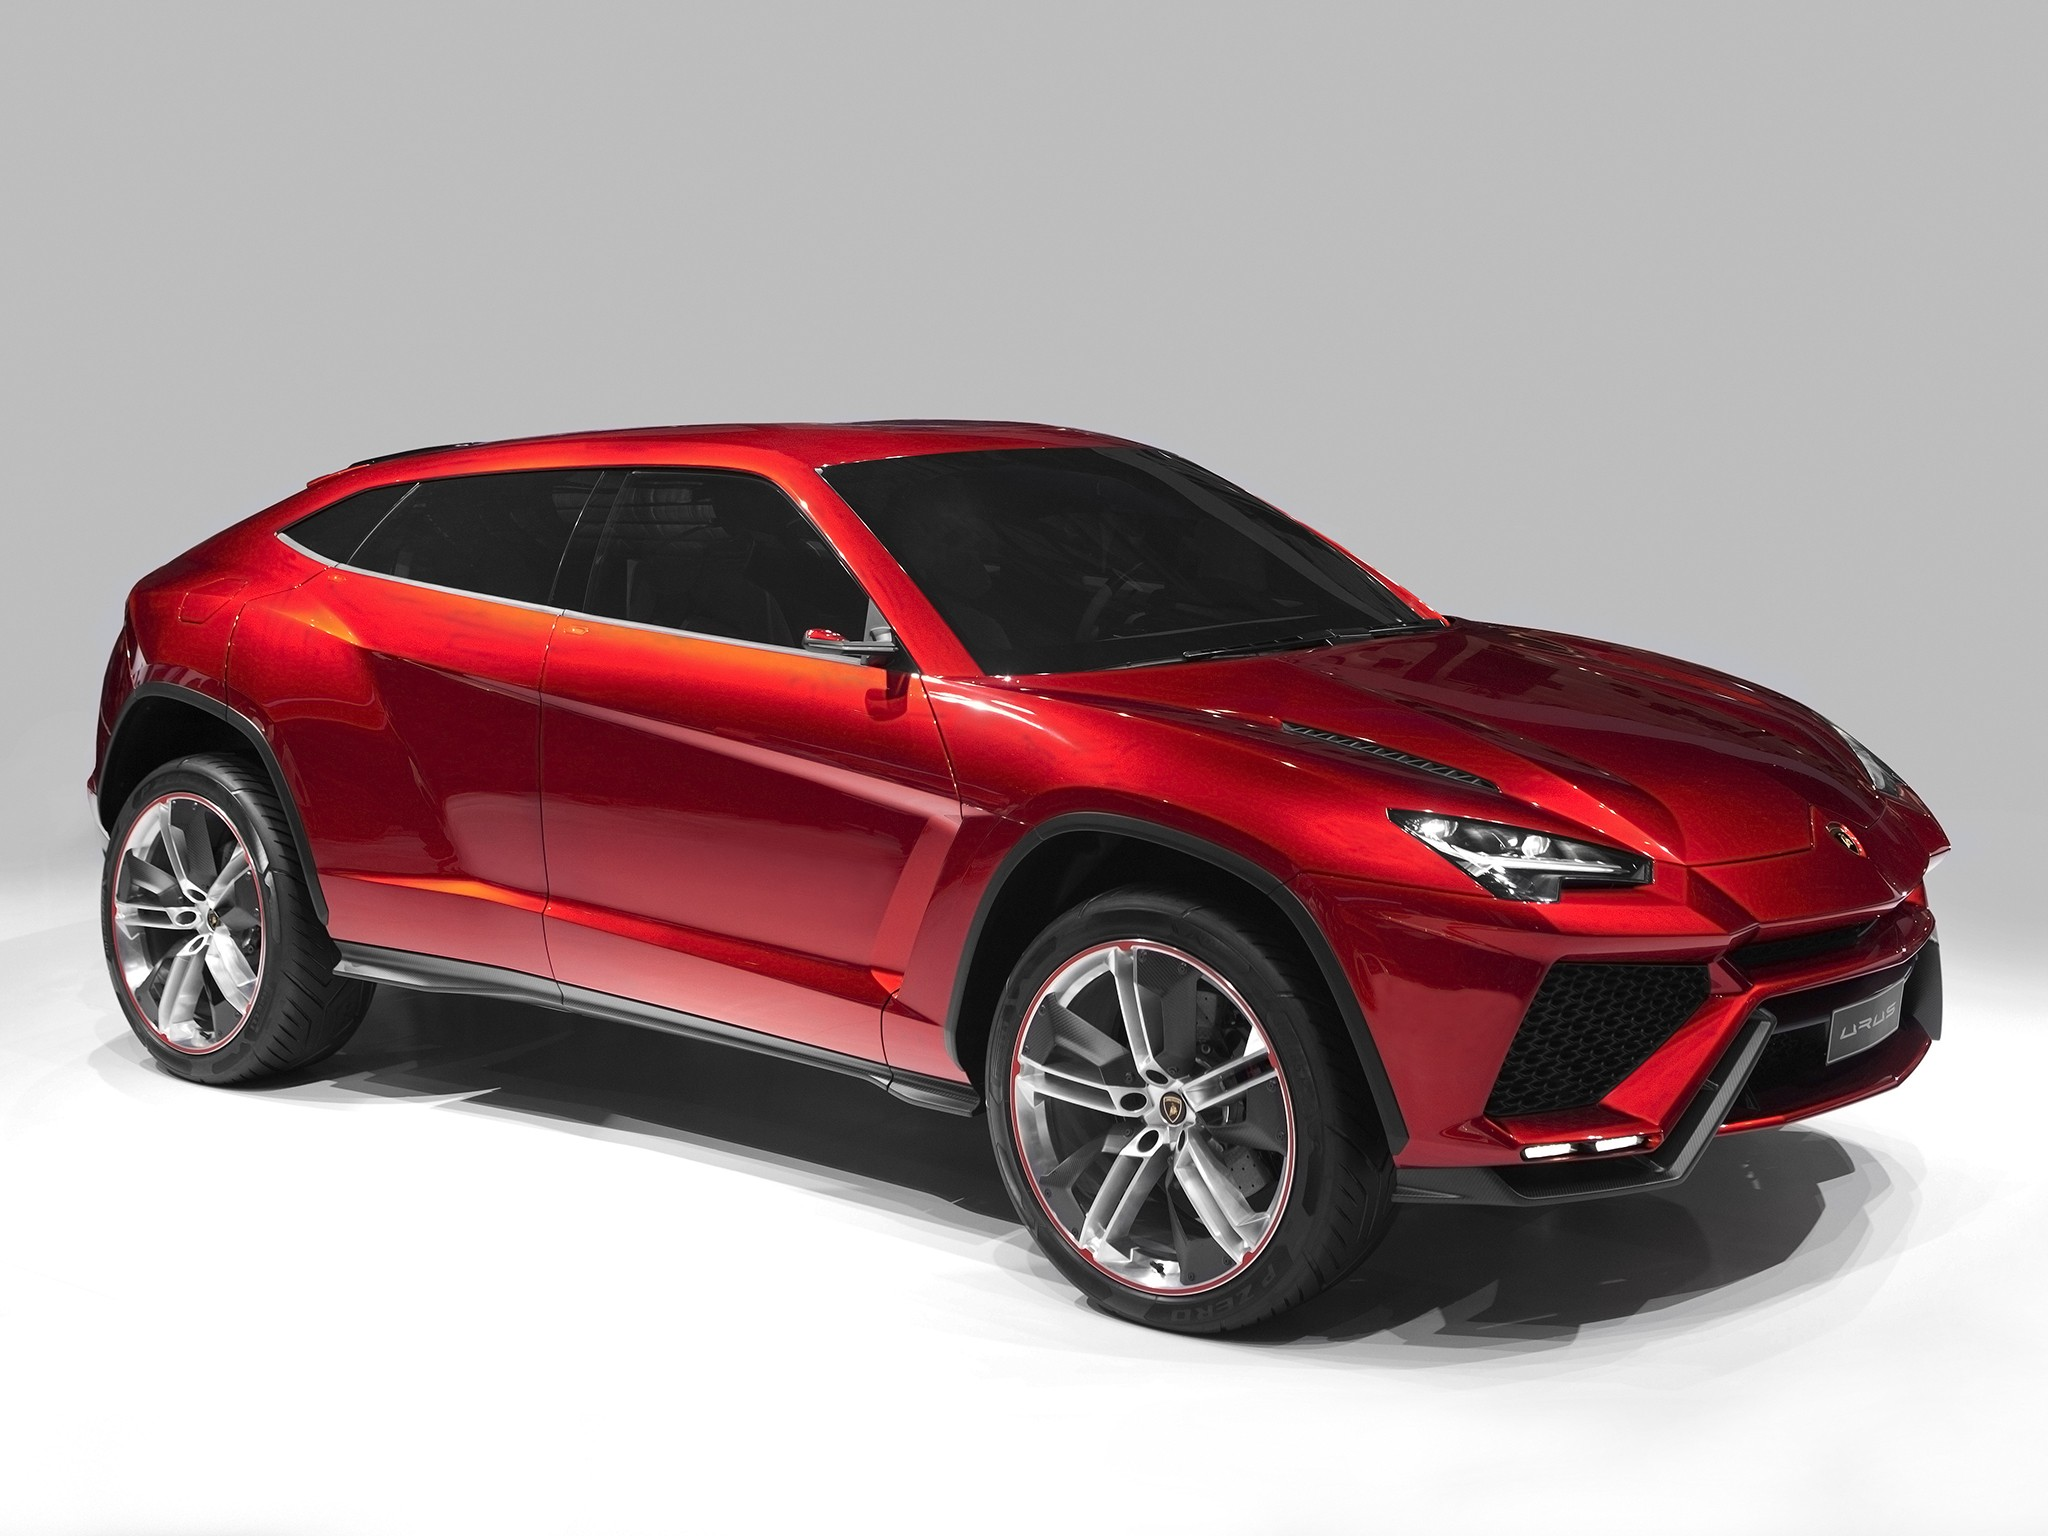 2018 lamborghini red. interesting 2018 2018 lamborghini urus test mule at munich airport concept   intended lamborghini red